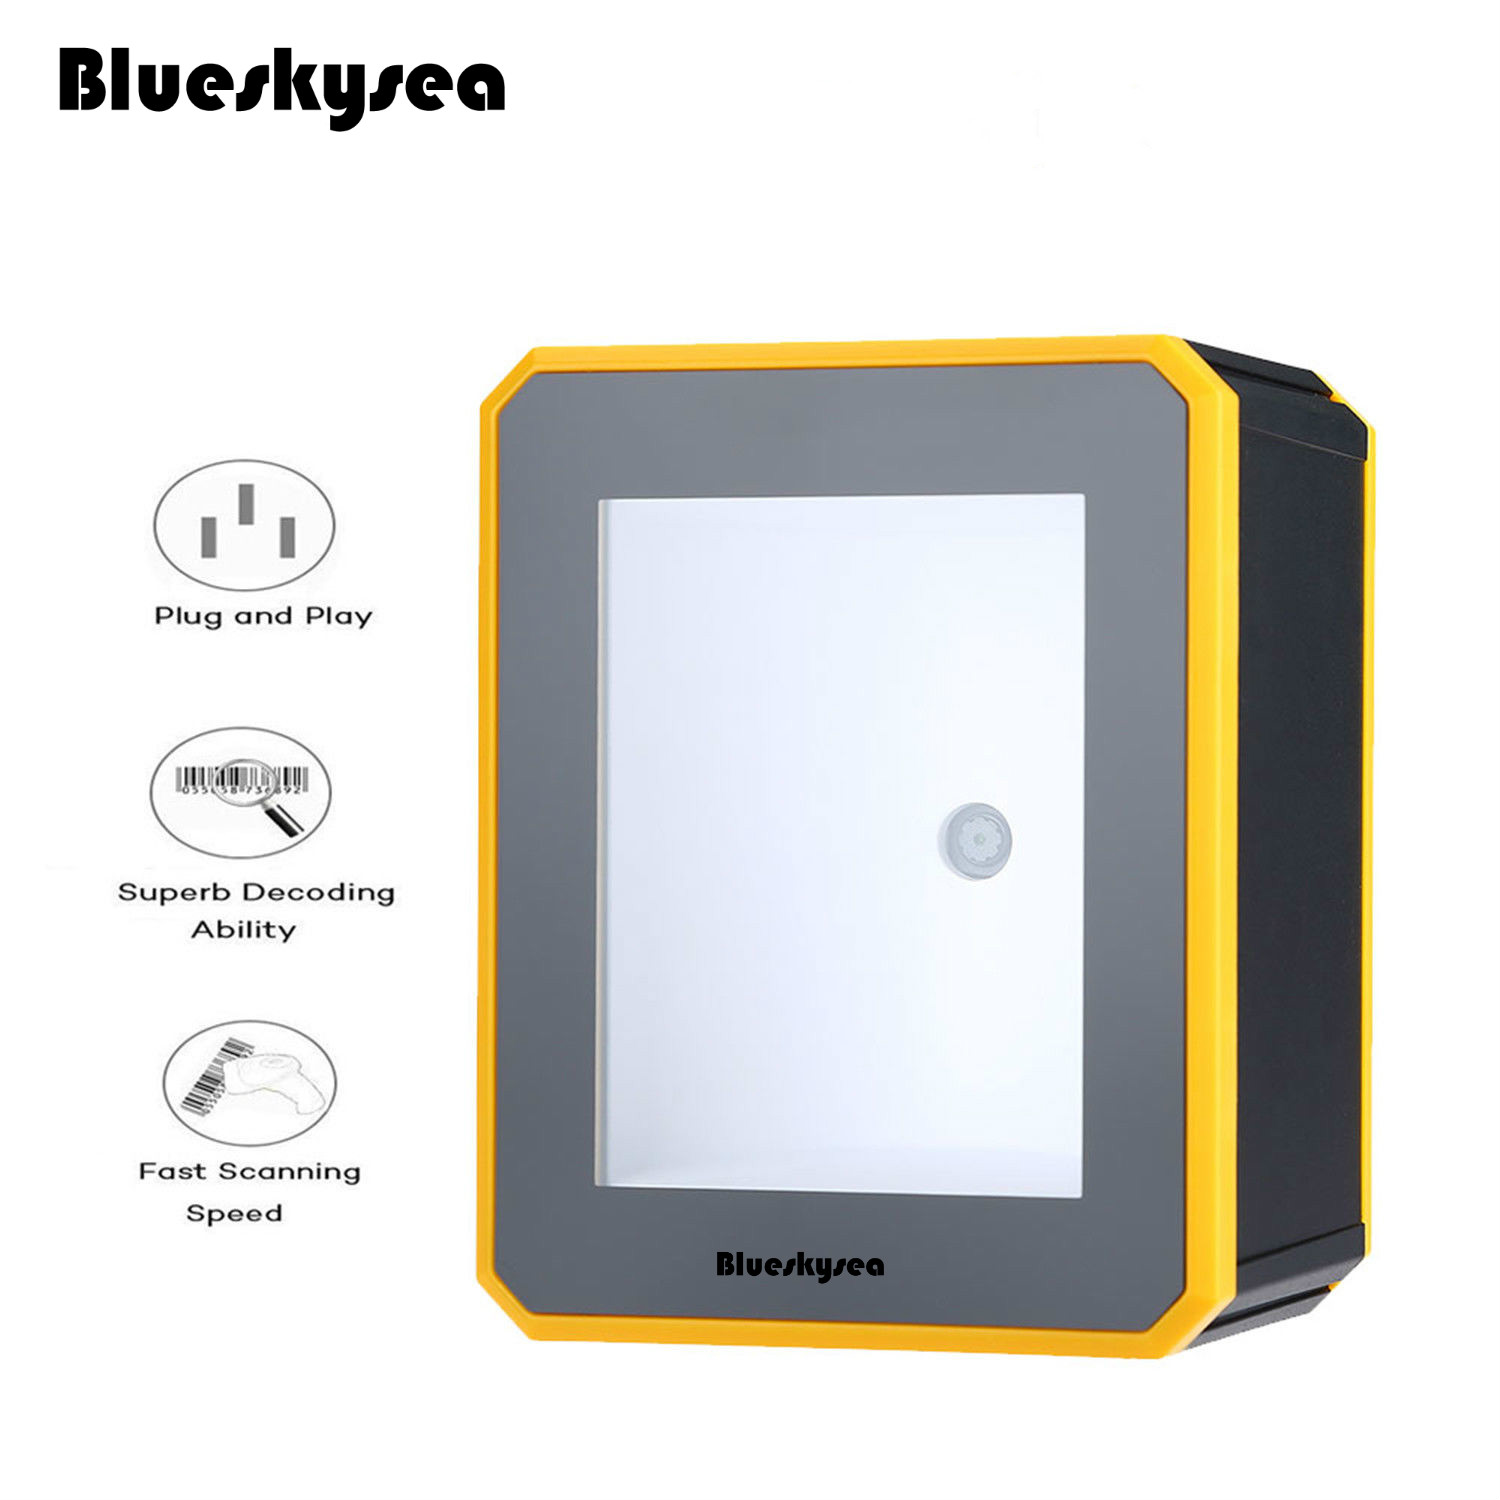 Blueskysea YK-MP2600 Omni-Directional 2D Bar Code Scanner Platform Desktop USB Barcode Scanner QR Code Reader blueskysea yk wm3l 960x640 cmos 433mhz wireless bar code scaner 1d 2d qr code pdf417 scanner barcode wireless qr reader